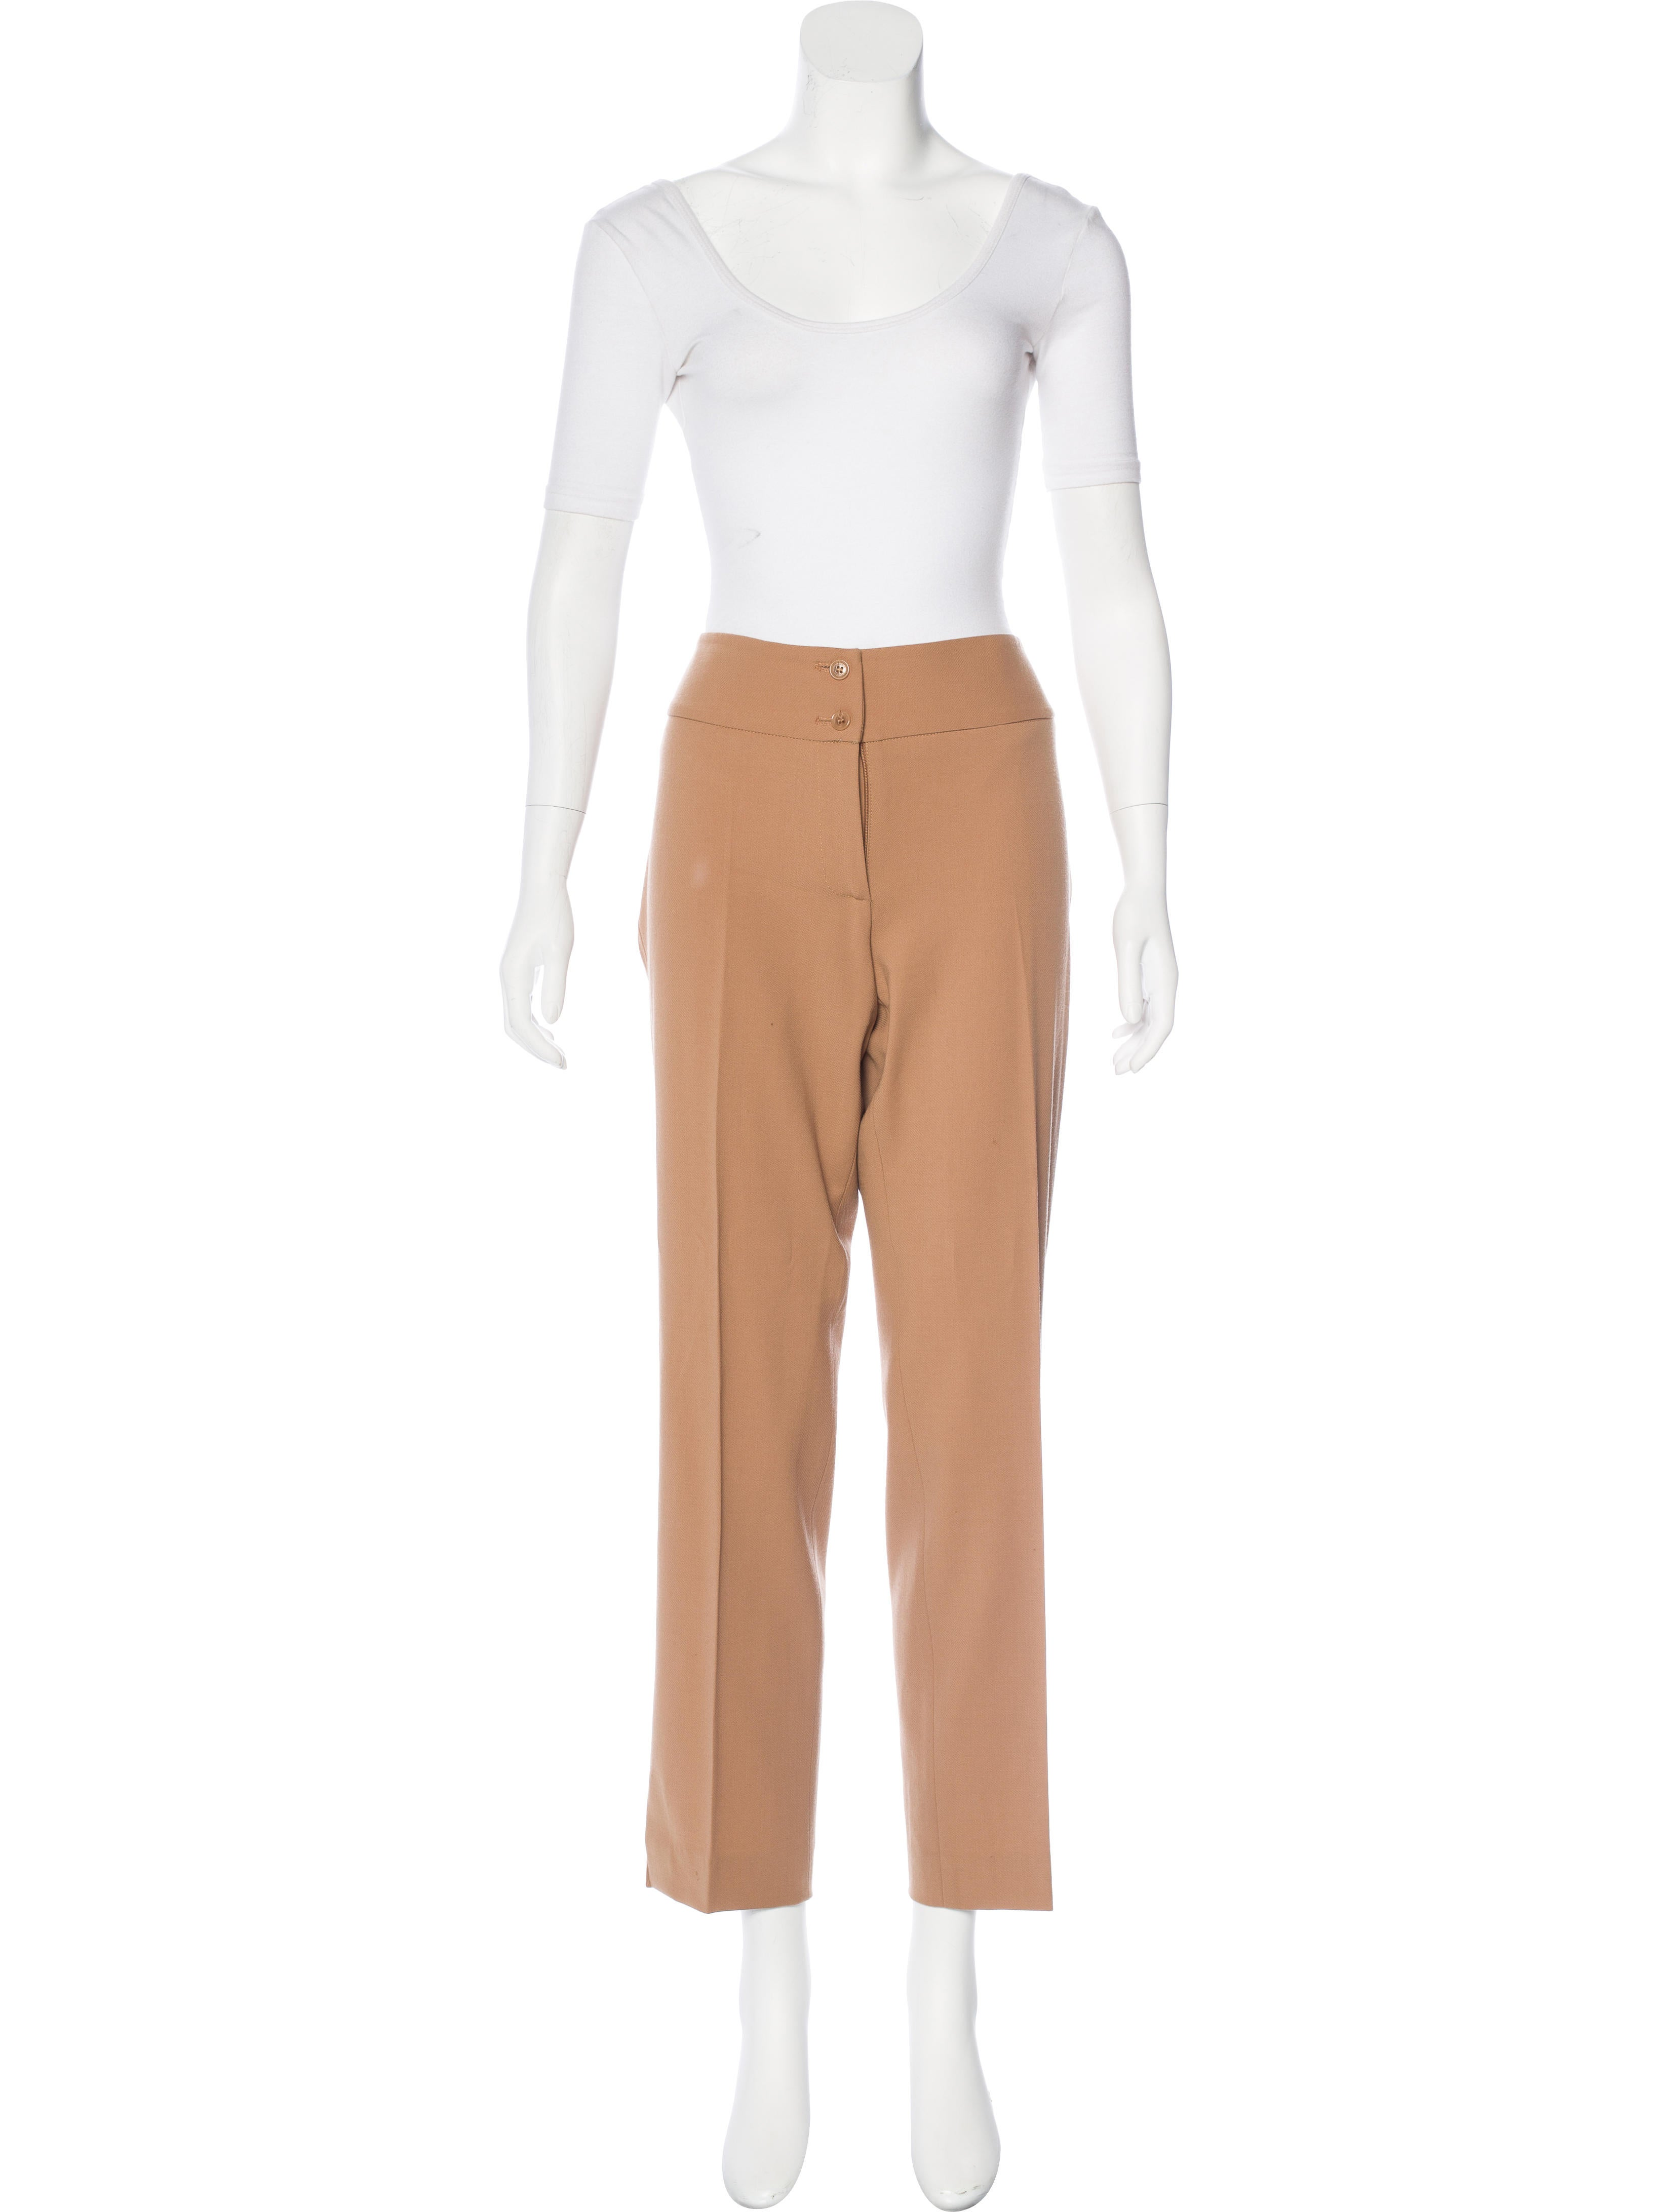 Find great deals on eBay for straight leg suit pants. Shop with confidence.